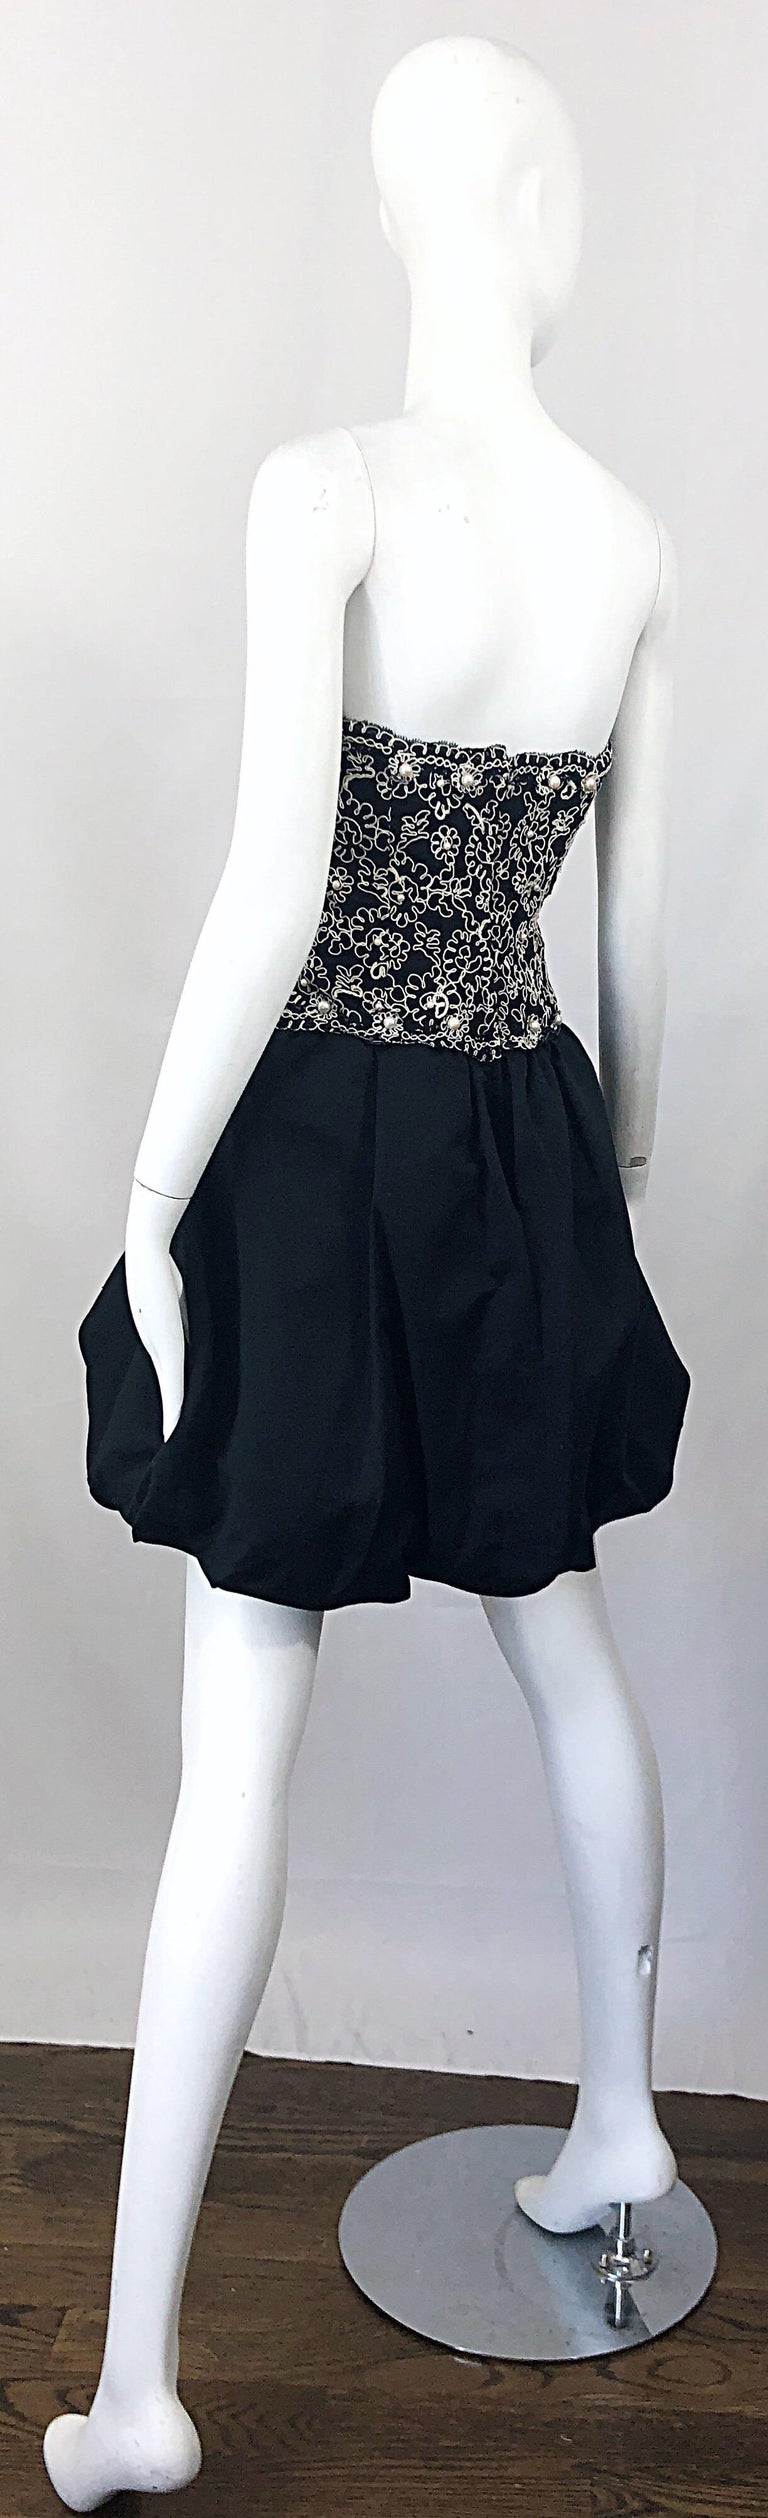 Chic 1980s Size 12 Strapless Pearl Encrusted Black and White Pouf Vintage Dress For Sale 10